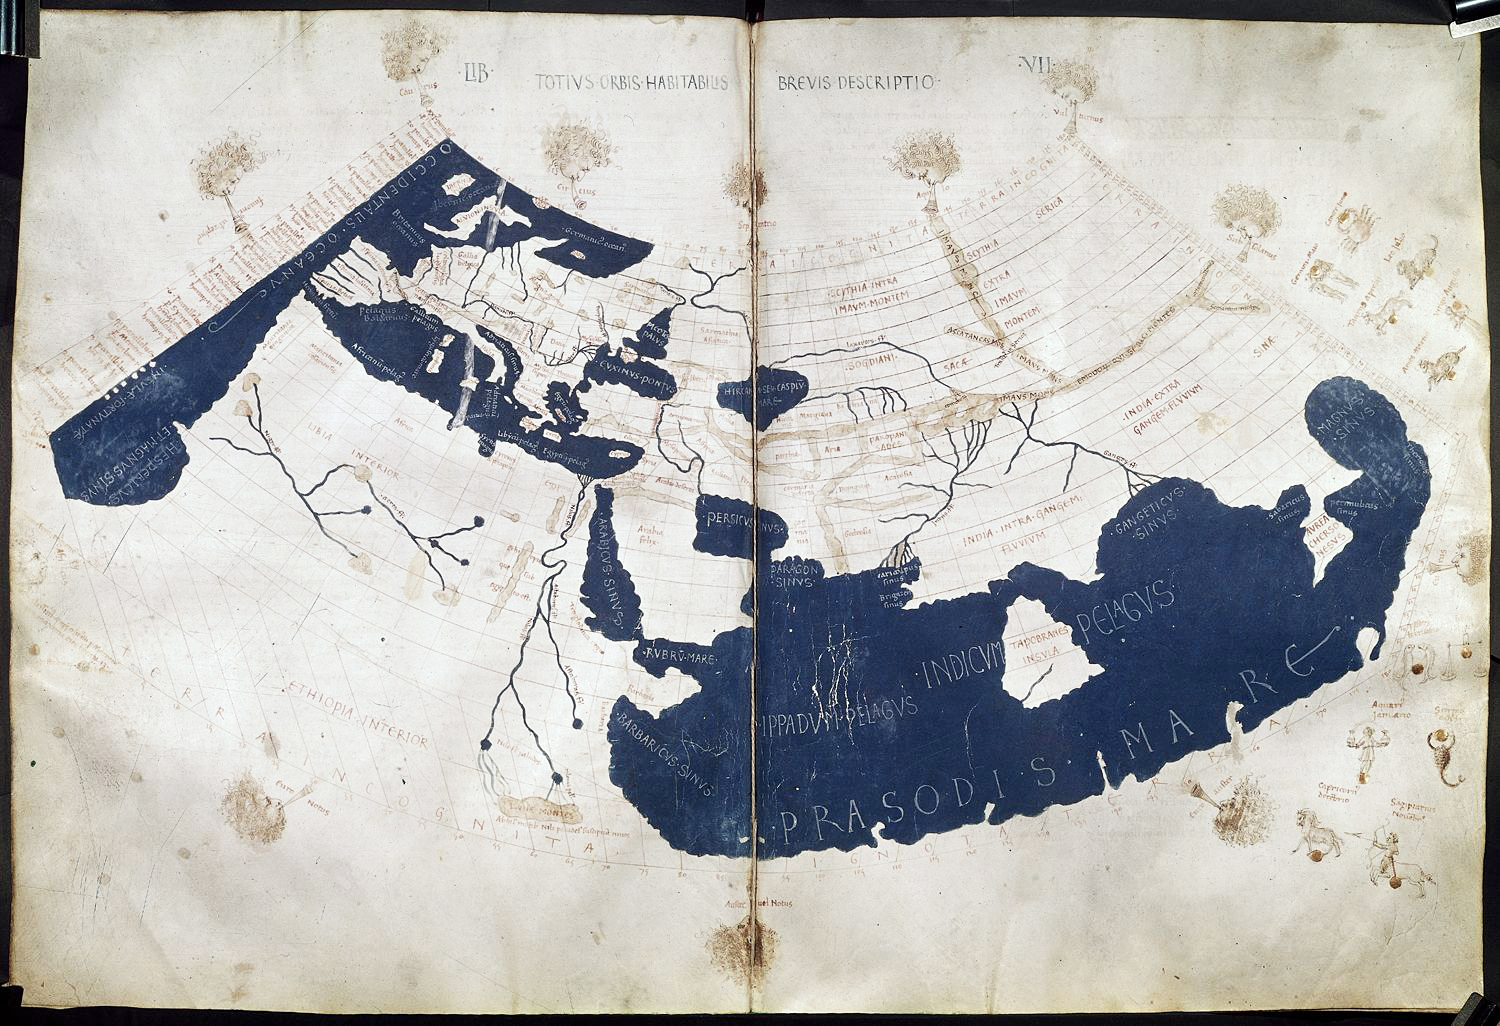 Geography and empire postcolonial studies ptolemys 150 ce world map redrawn in the 15th century public domain gumiabroncs Gallery